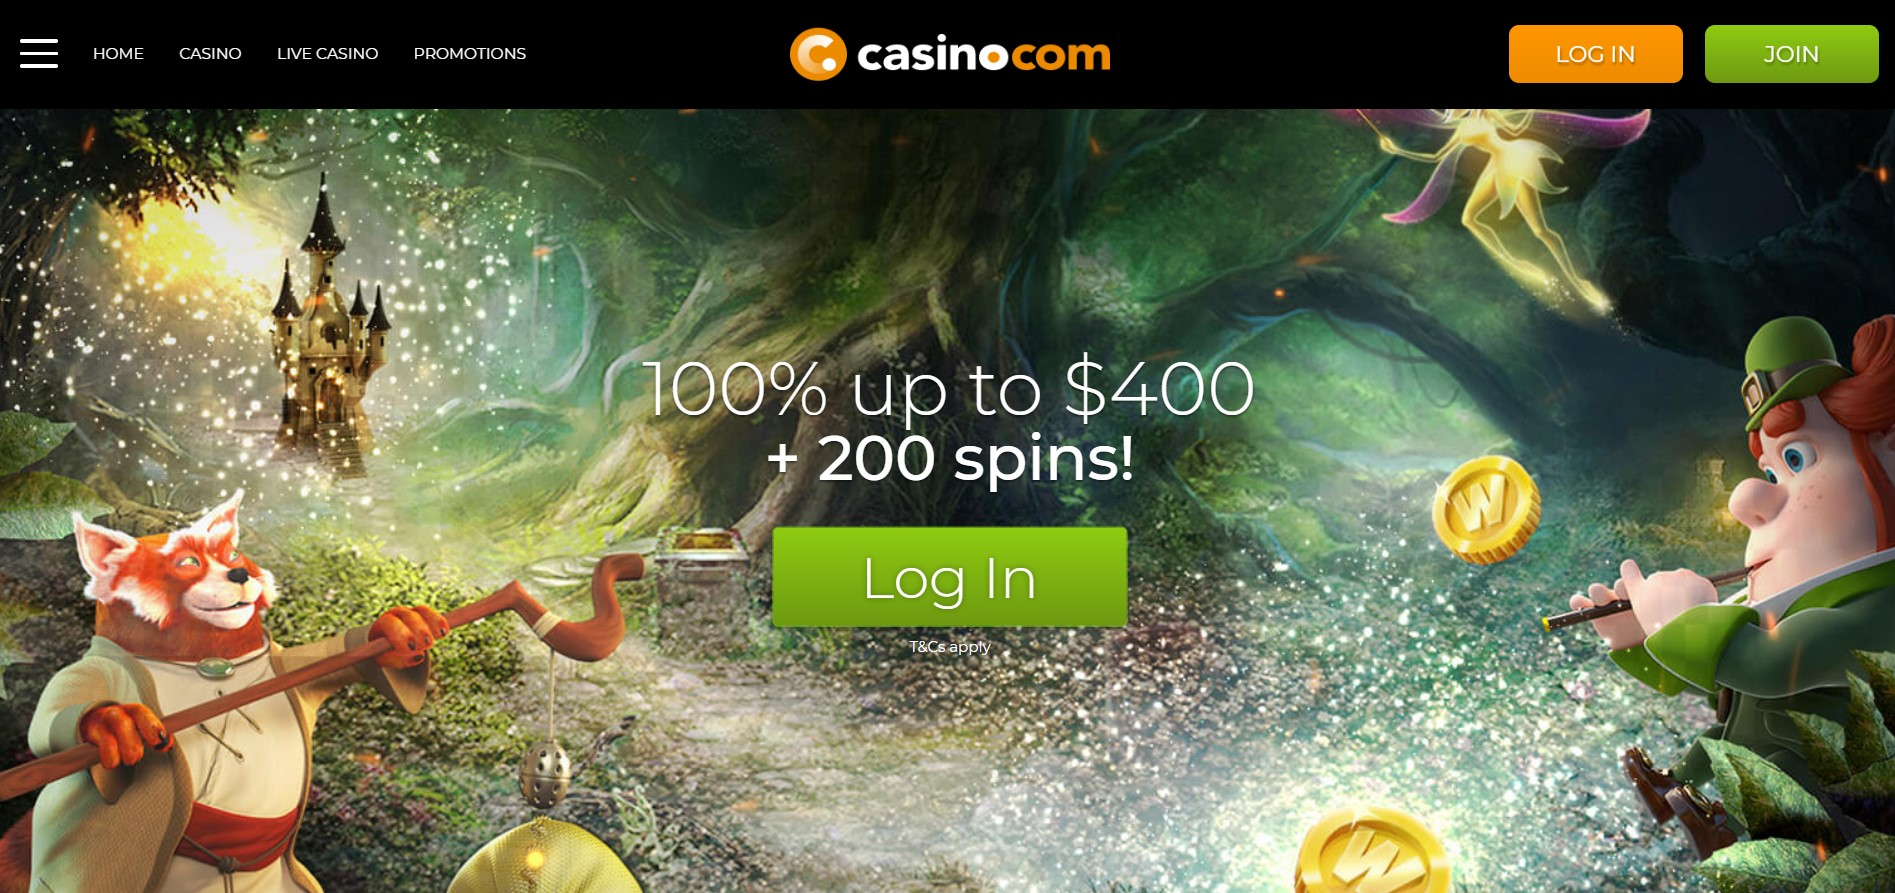 Casino.com website landing page